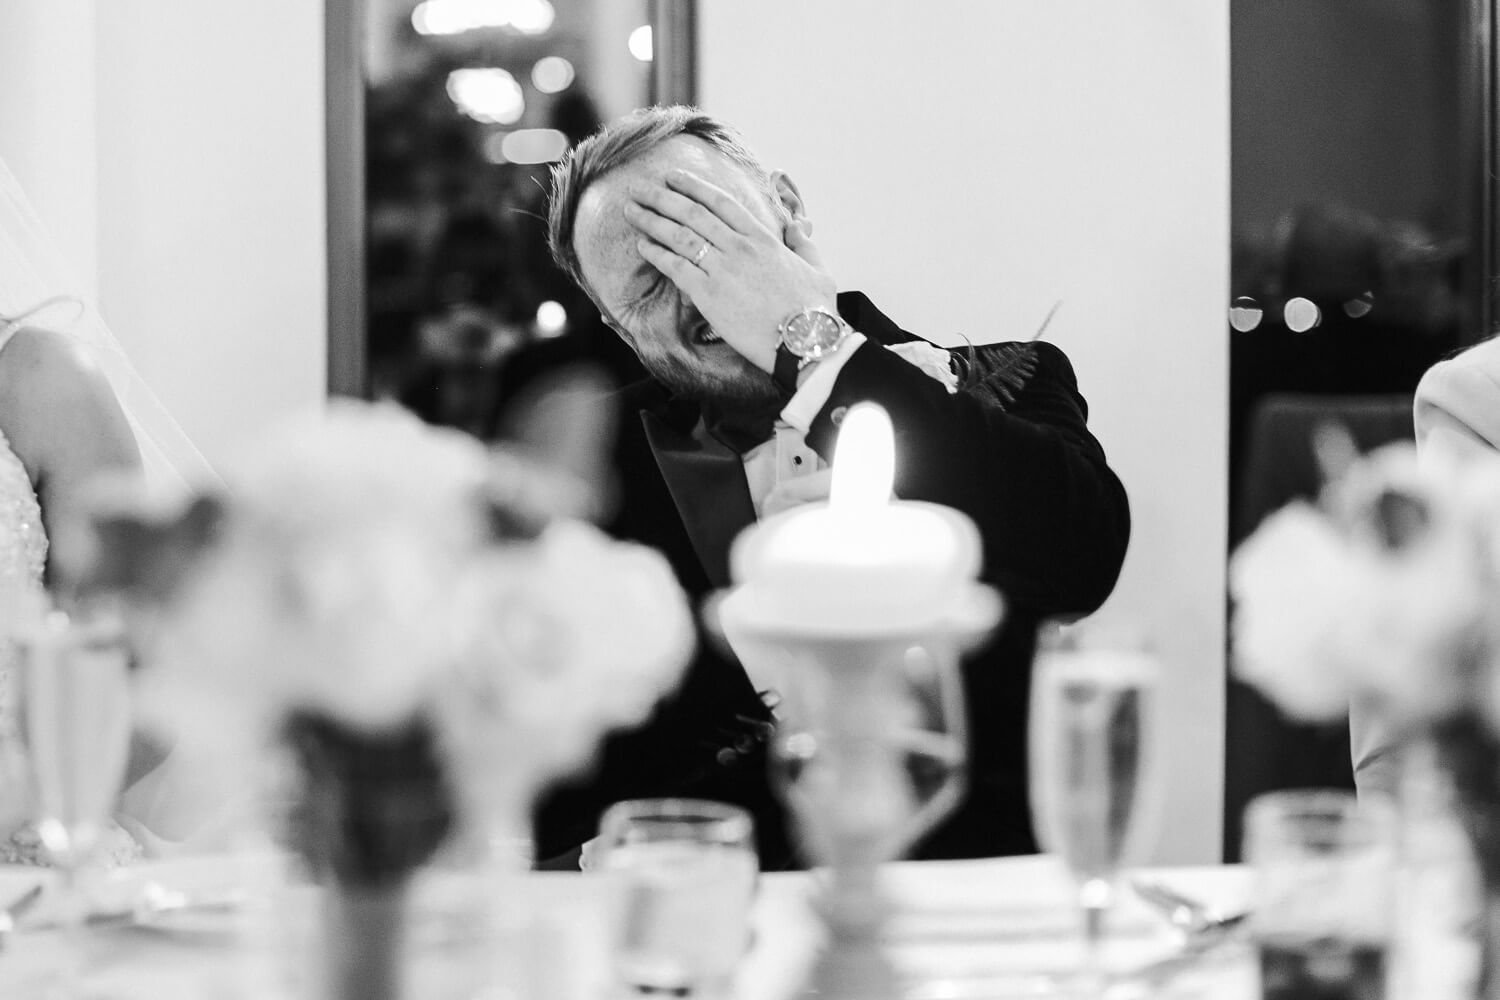 Embarrassed groom with hand on face